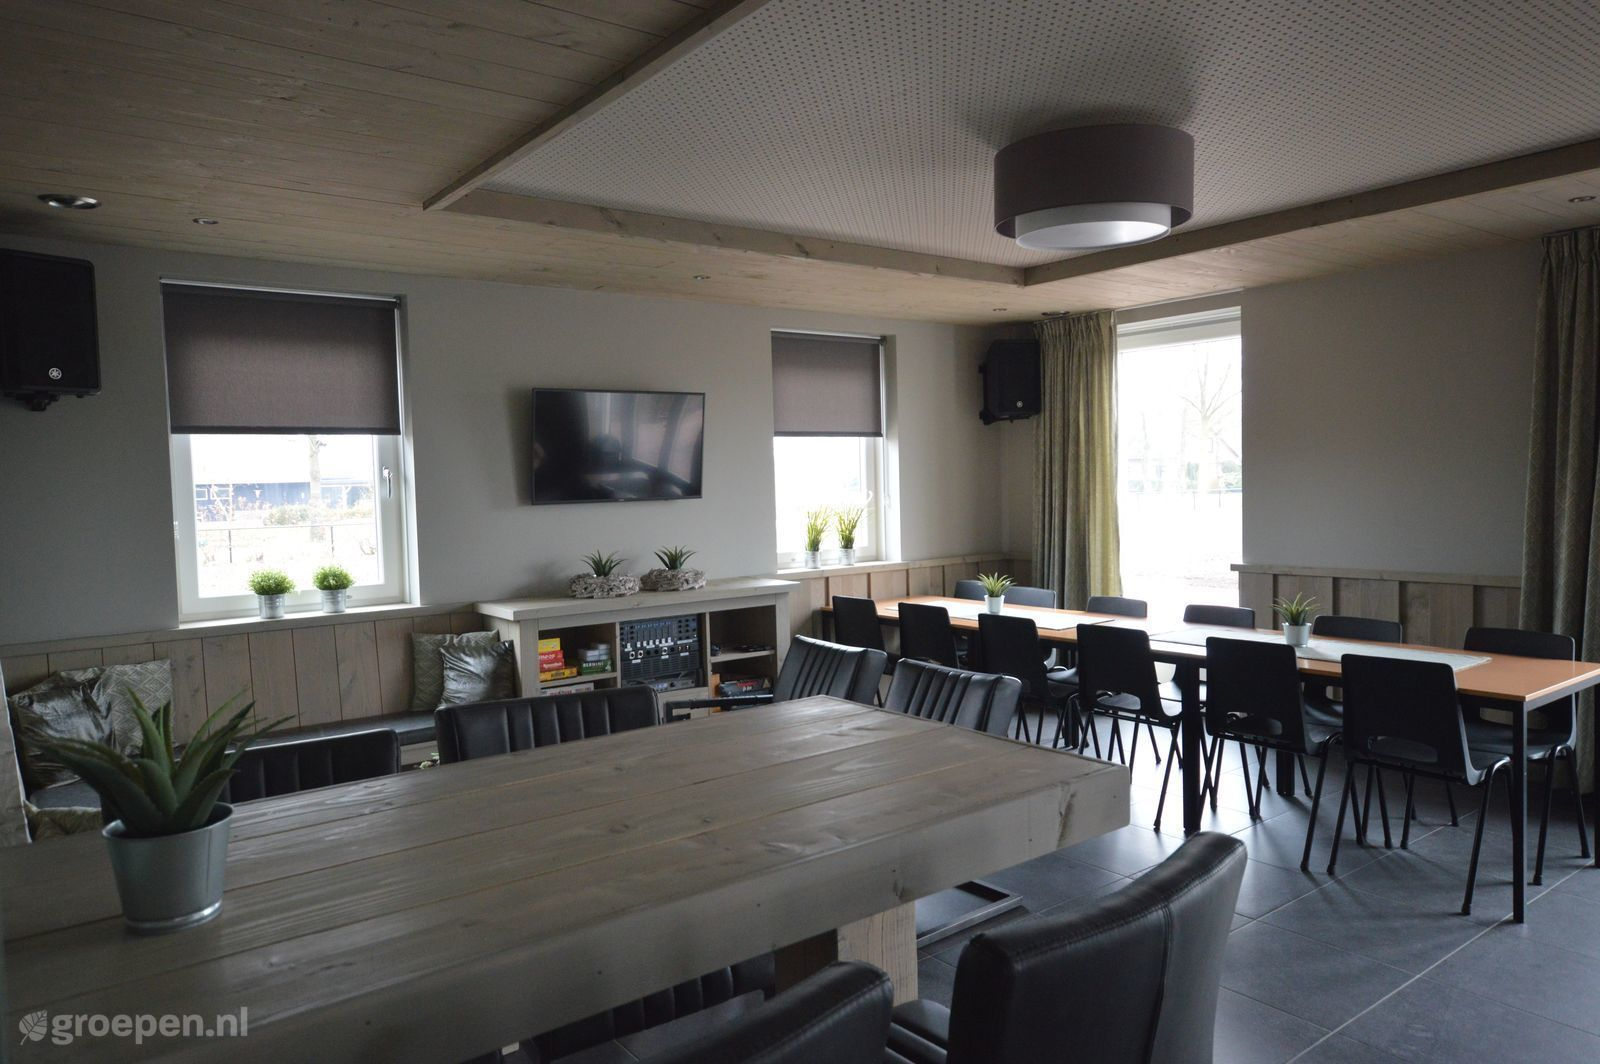 Group accommodation Wekerom